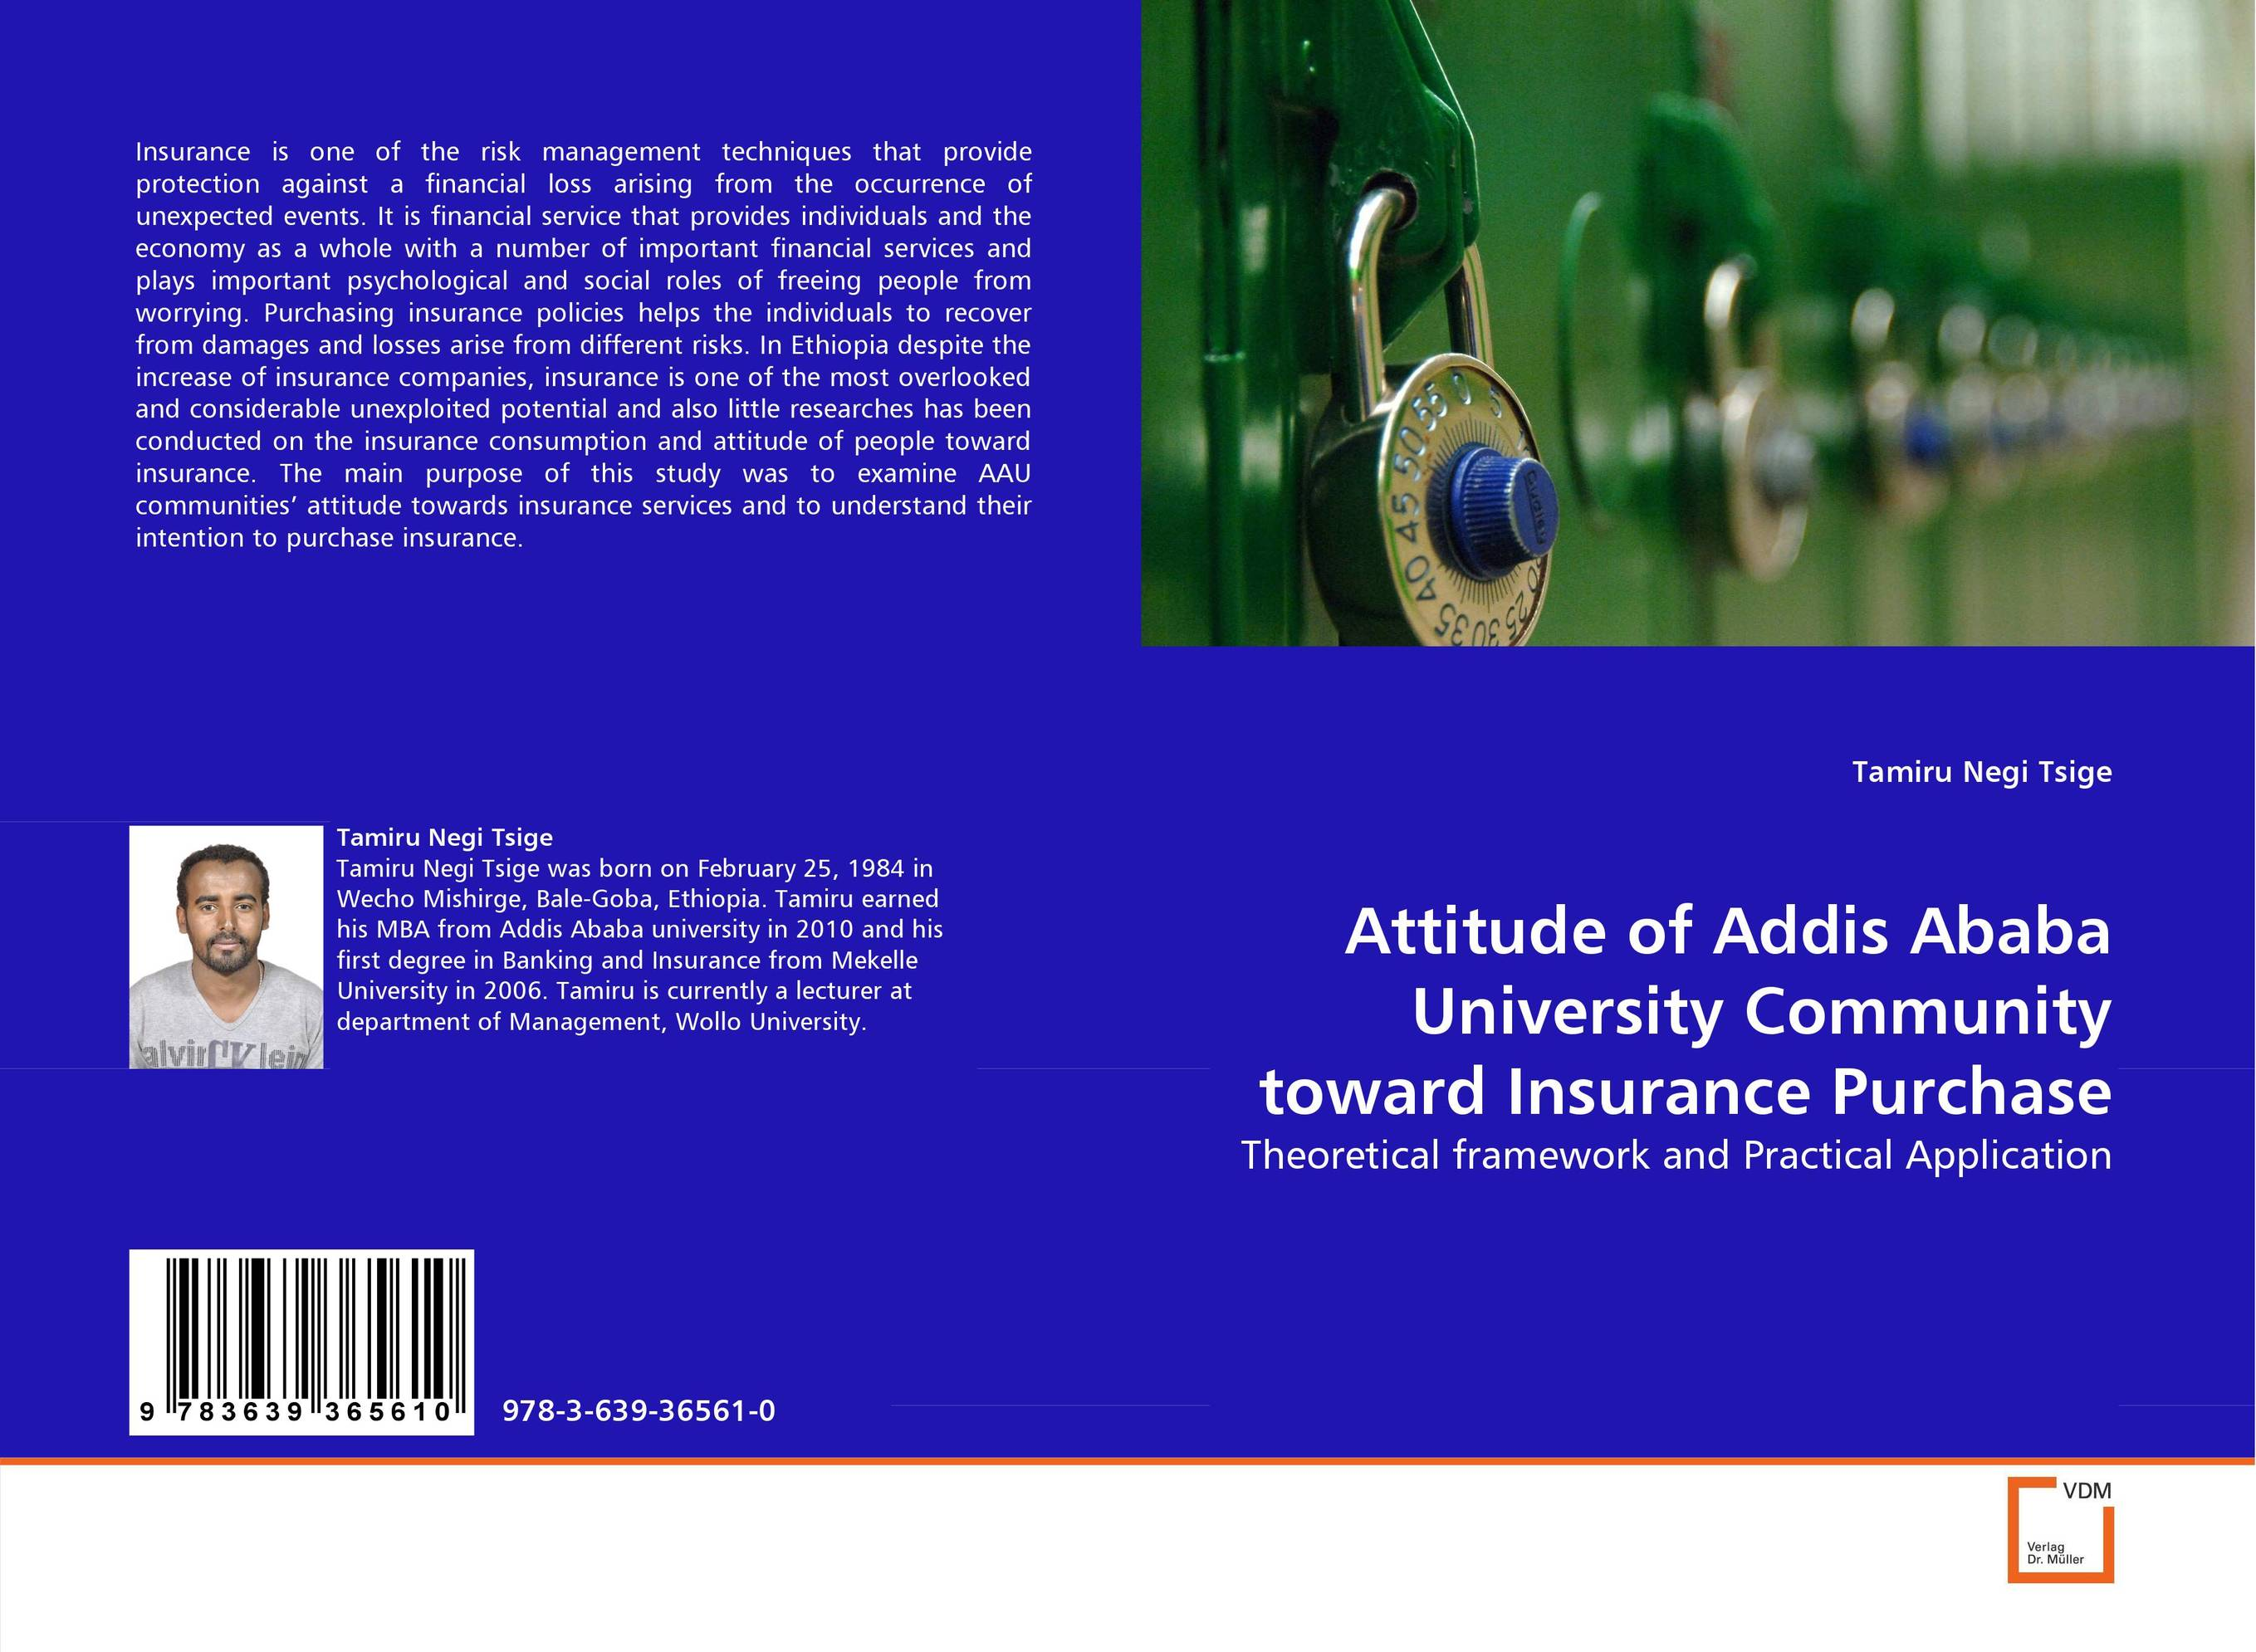 Attitude of Addis Ababa University Community toward Insurance Purchase financial performance analysis of general insurance companies in india